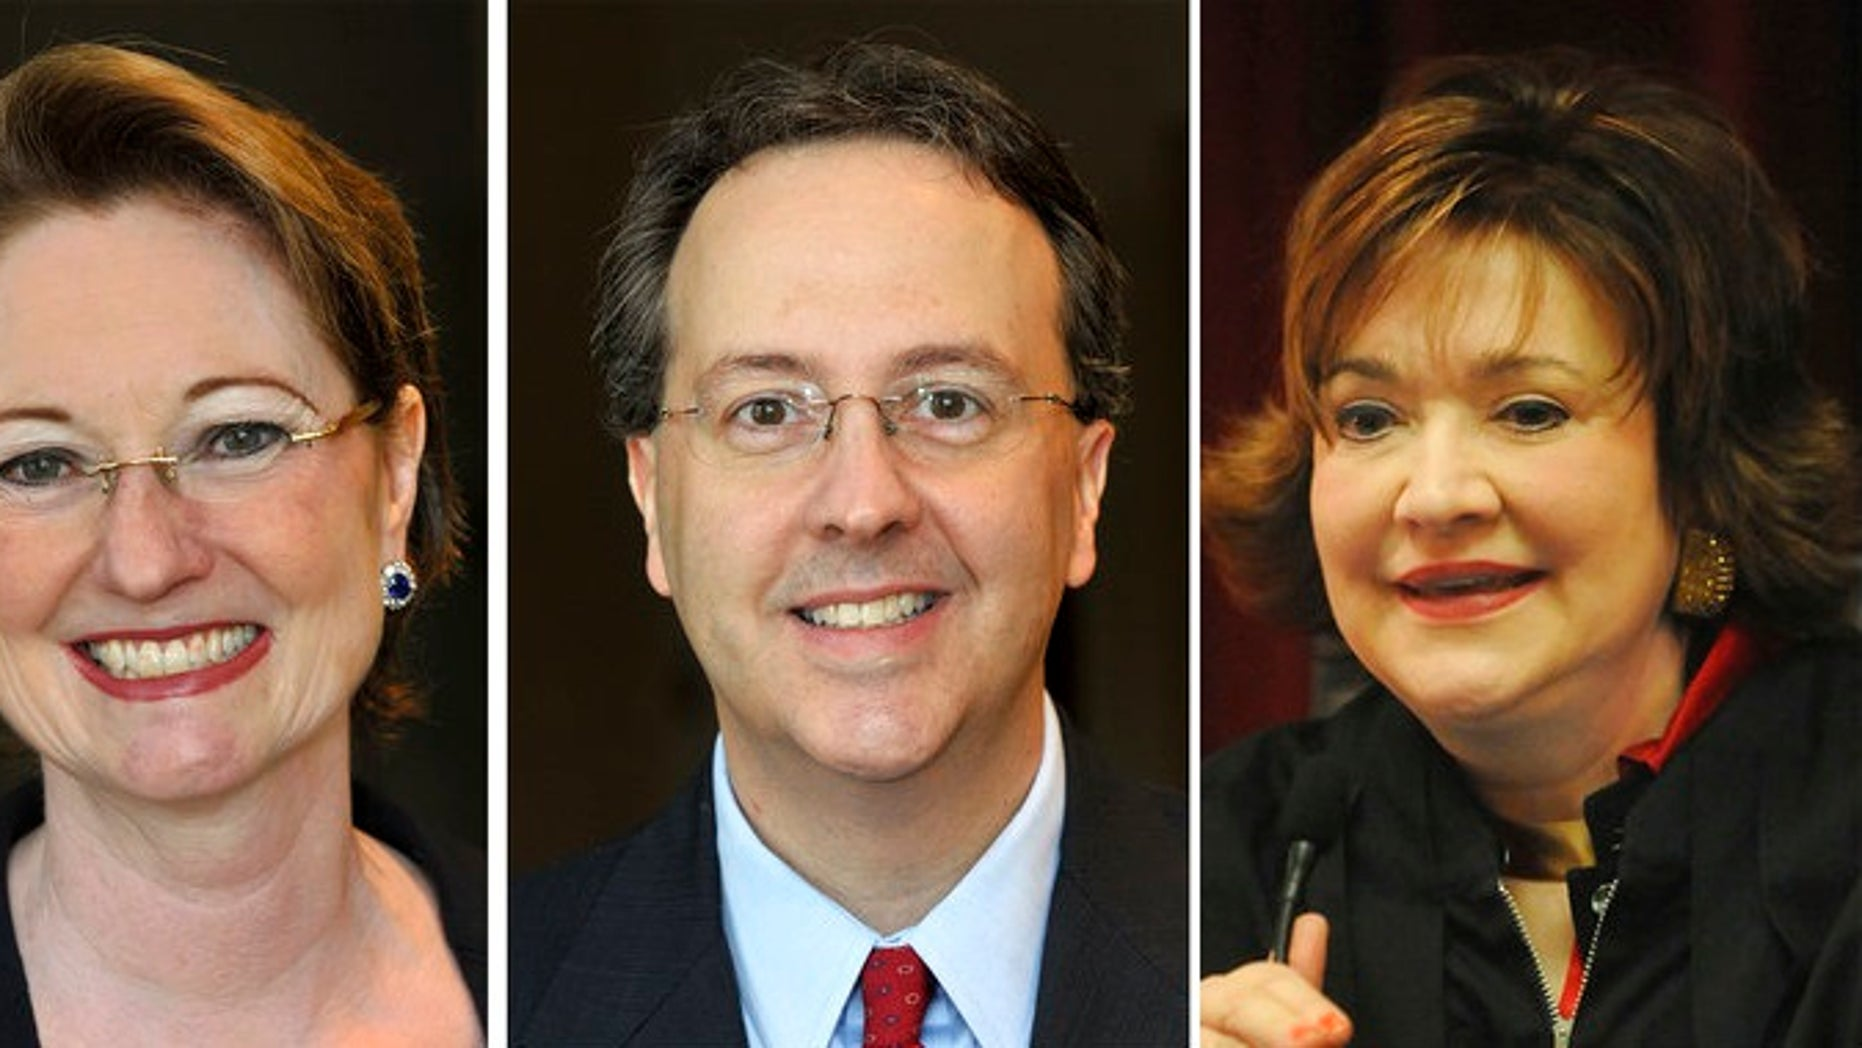 West Virginia state Supreme Court justices, from left, Robin Davis on Oct. 3, 2012, Allen Loughry on Oct. 3, 2012, and Margaret Workman on Dec. 29, 2008. The West Virginia House of Delegates is considering impeachment articles against all four justices.